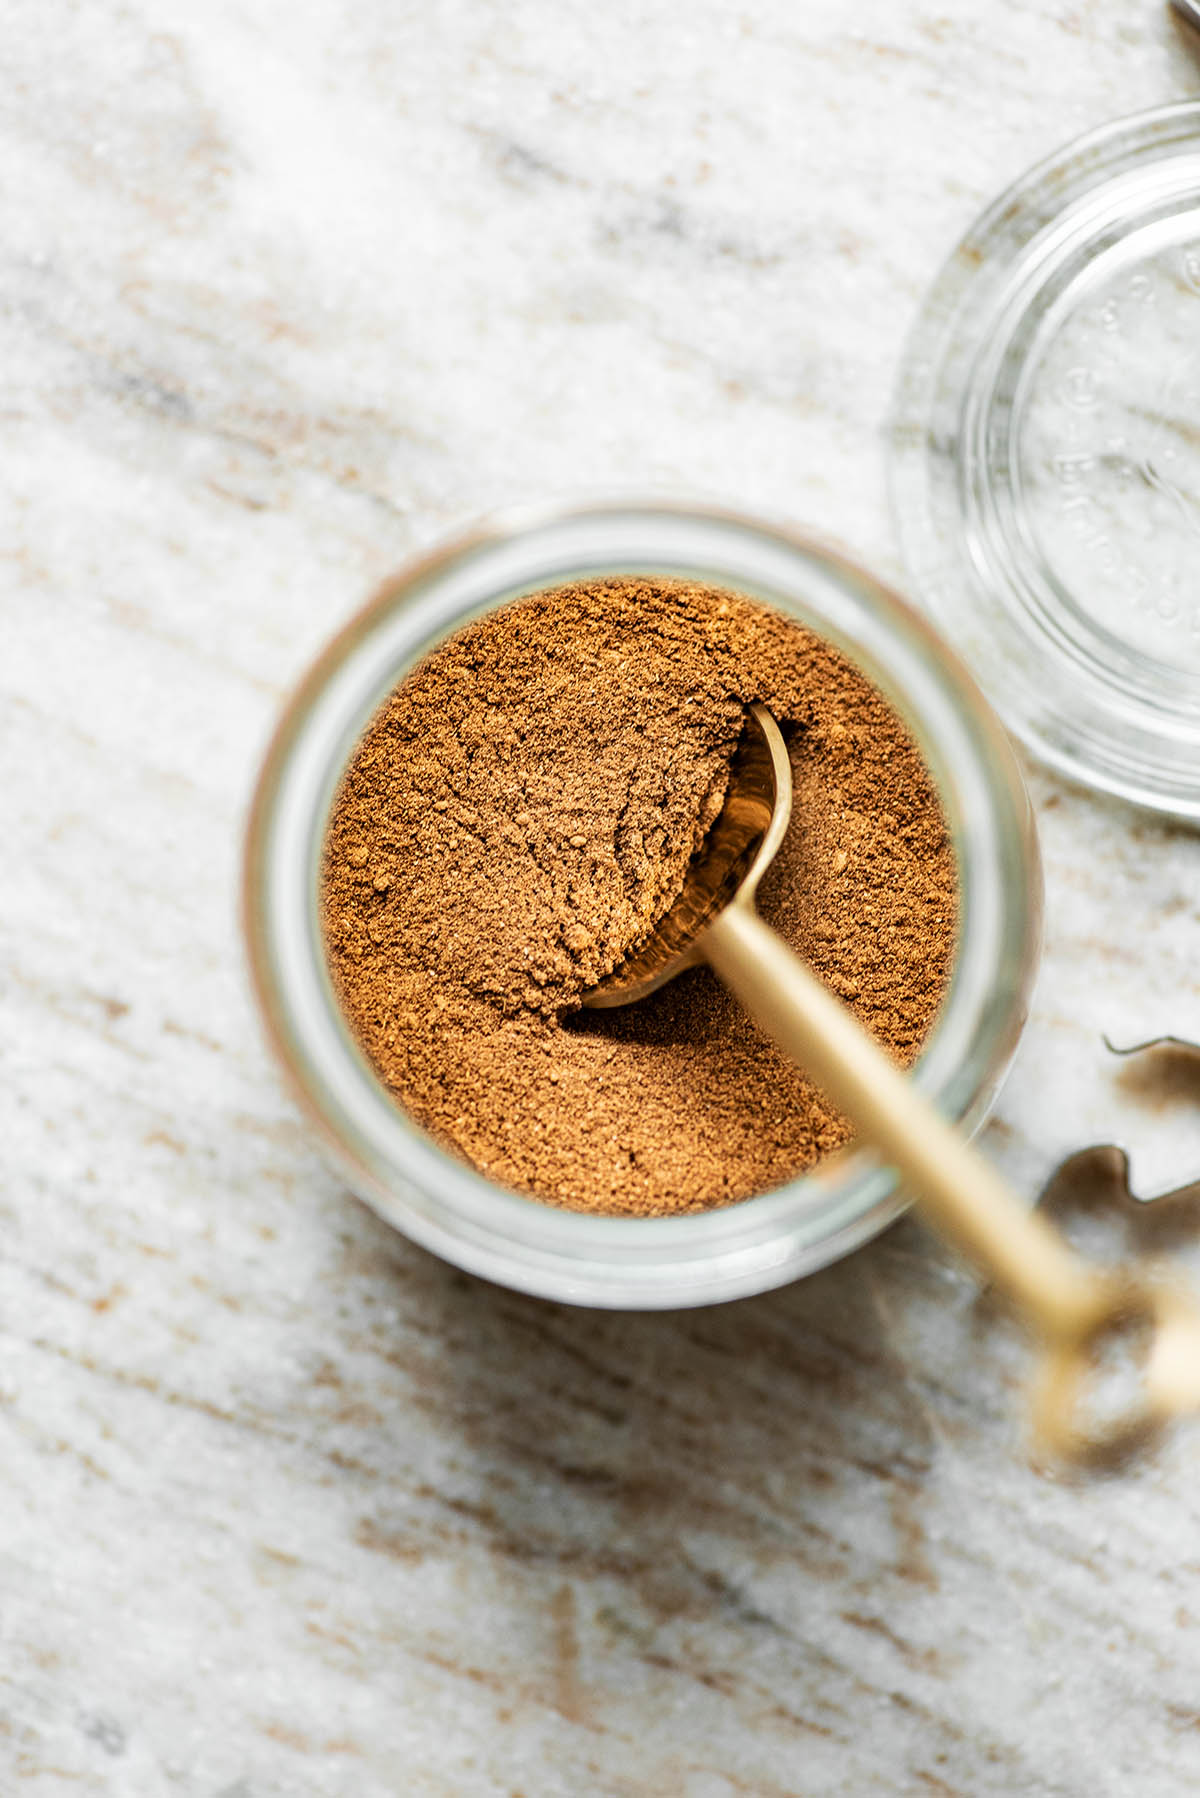 Spice mix in a small glass jar with a spoon in it, top down view.